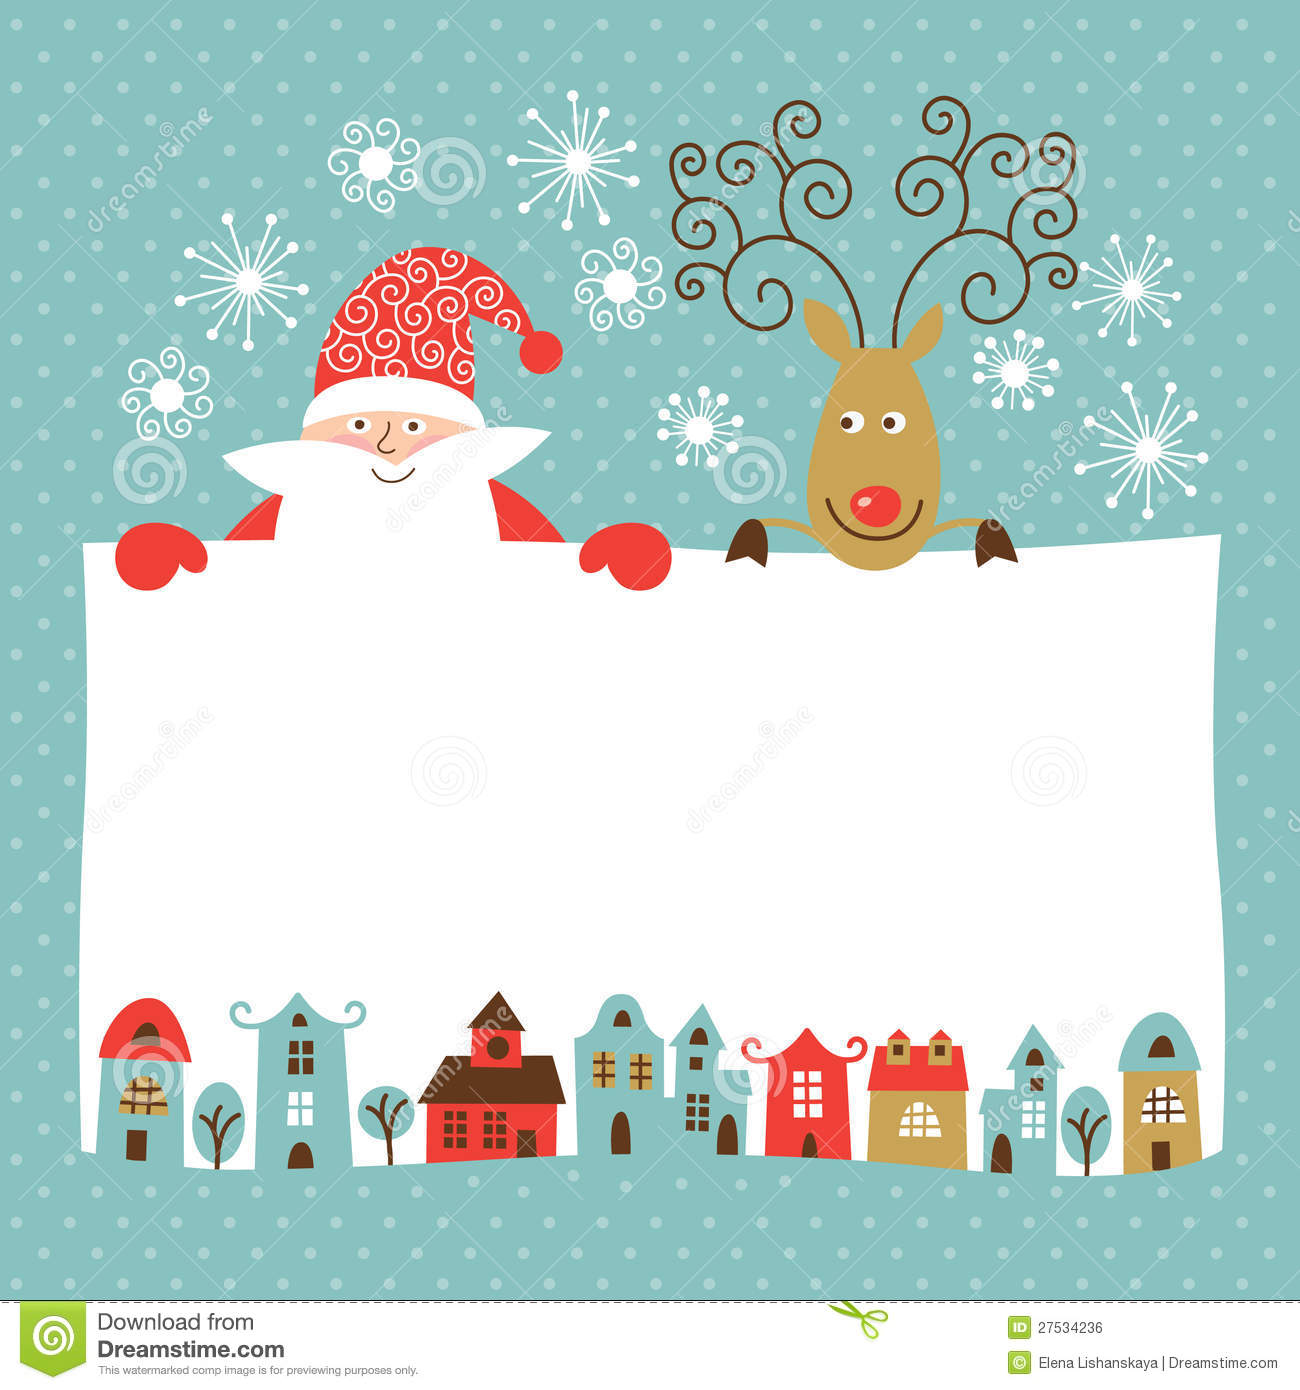 More similar stock images of ` Greeting Christmas and New Year car `